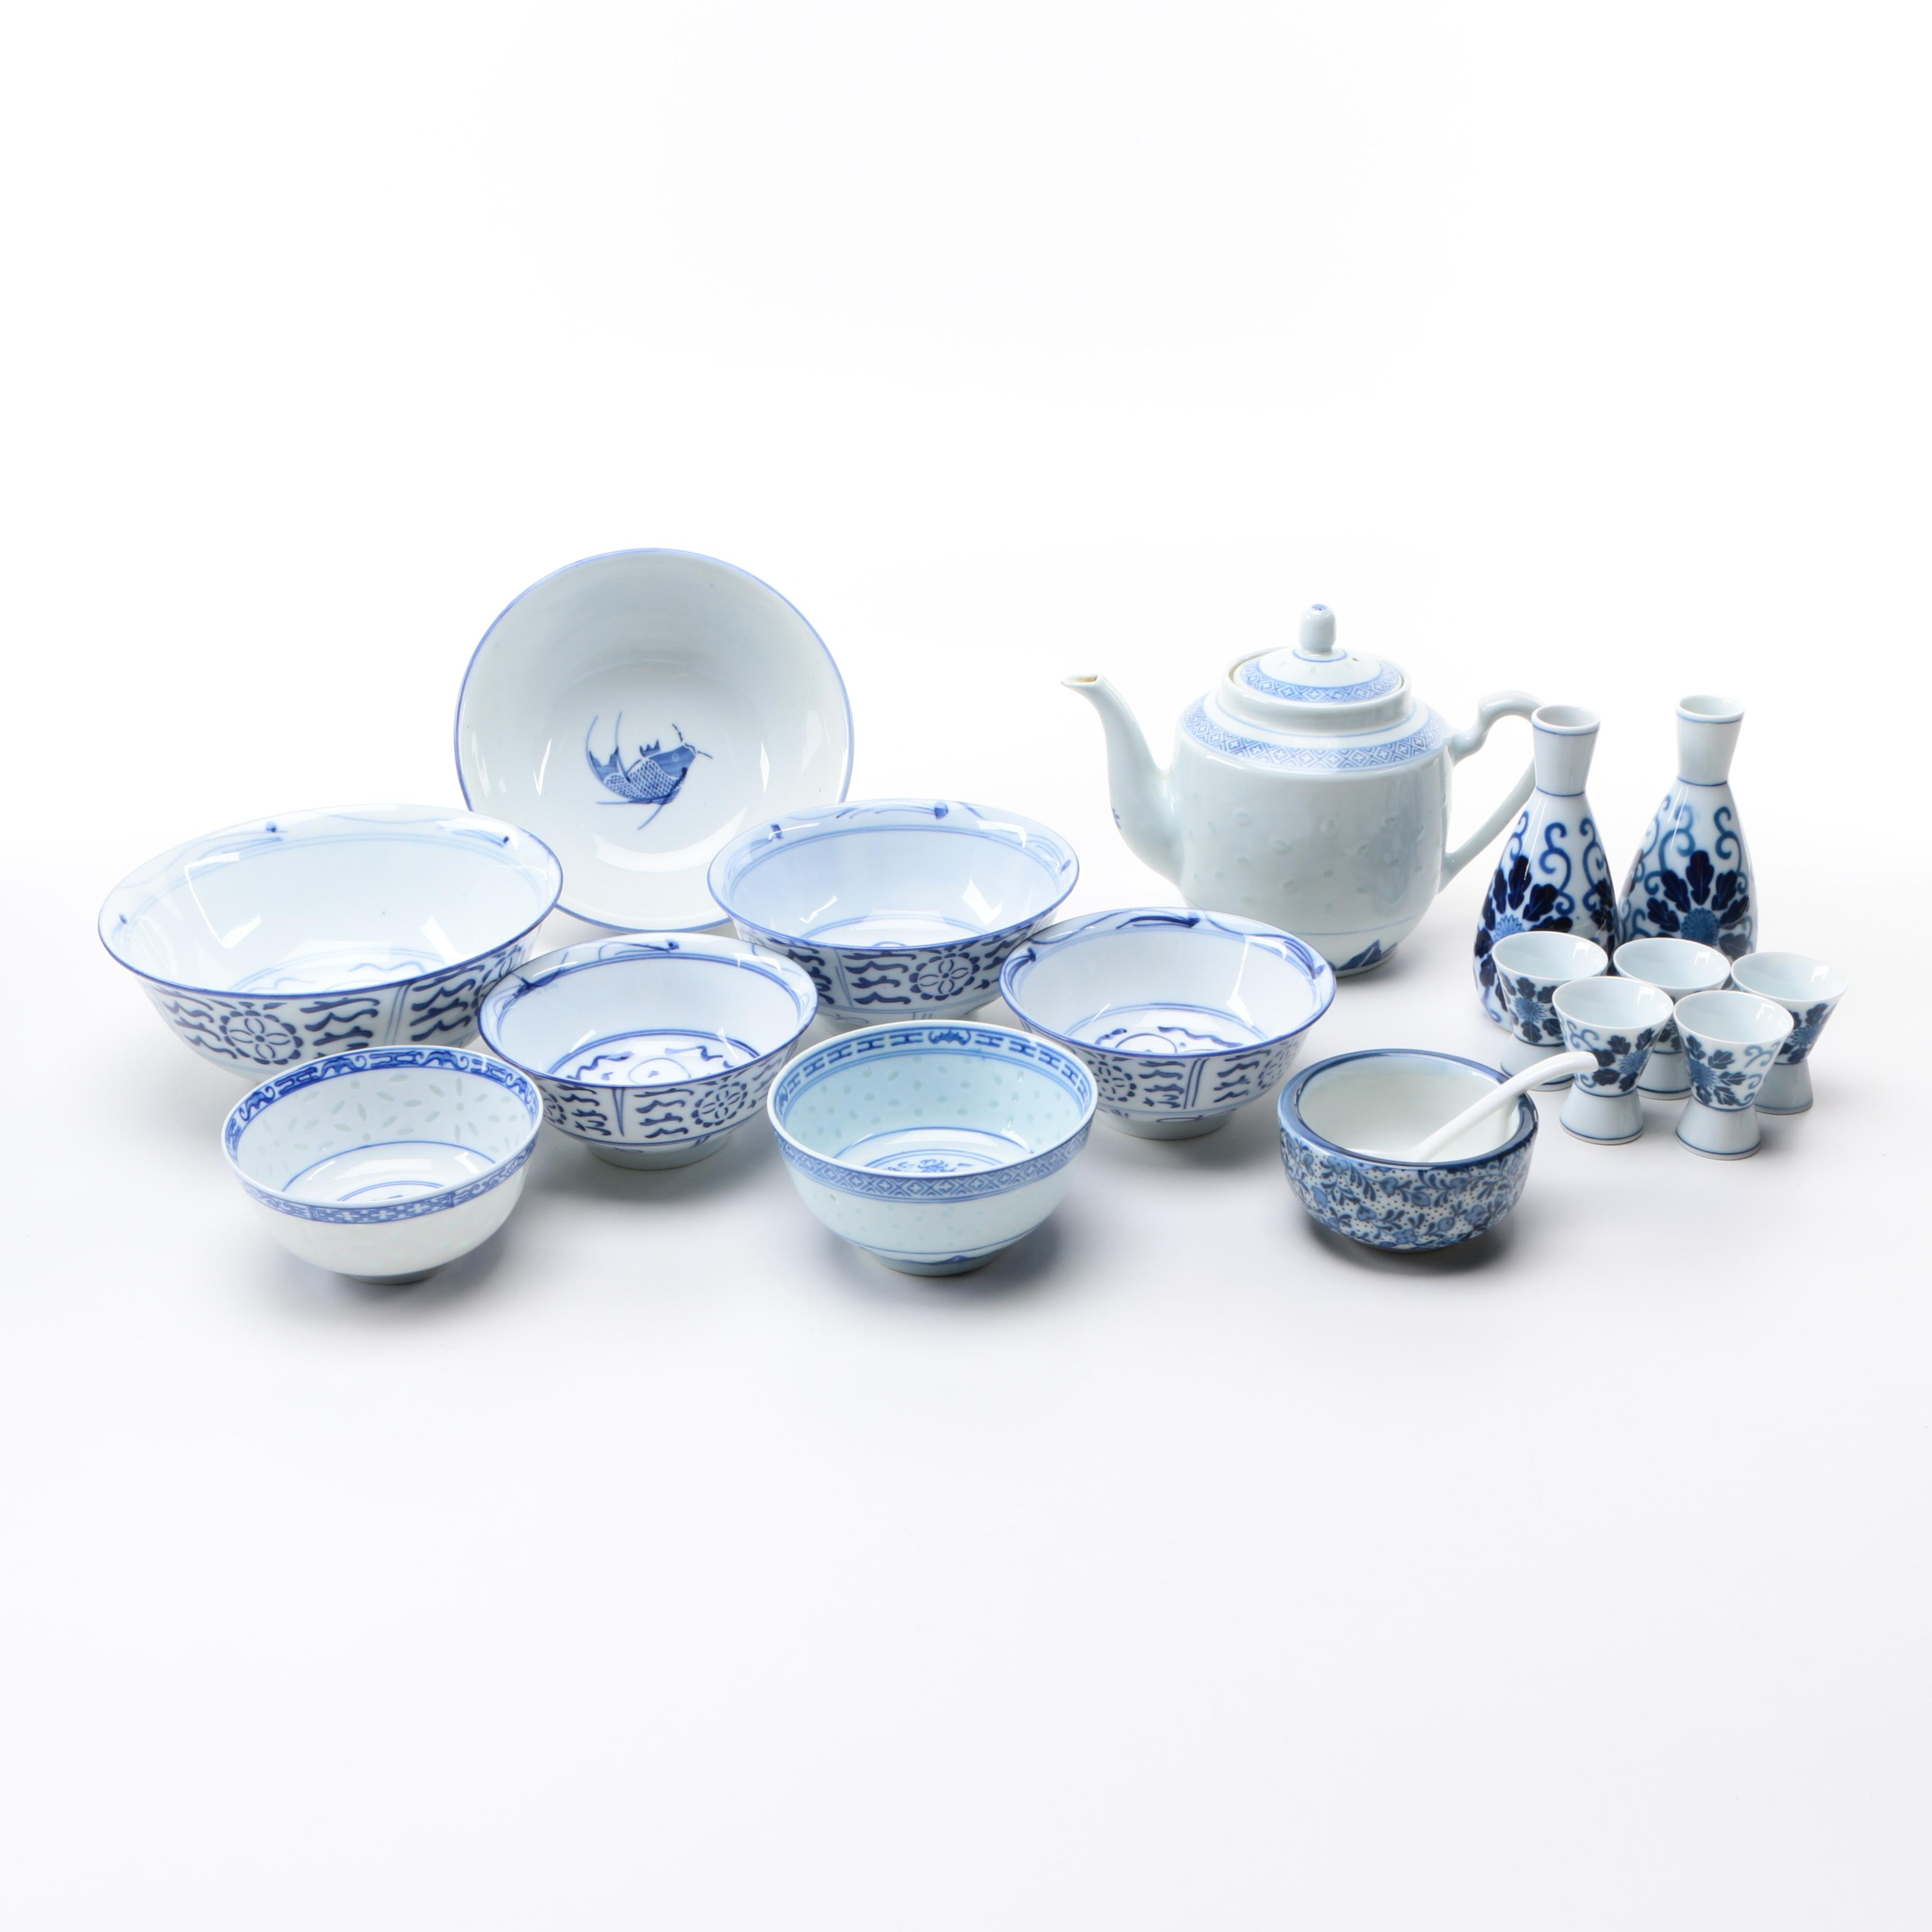 Chinese Blue and White Porcelain Tableware